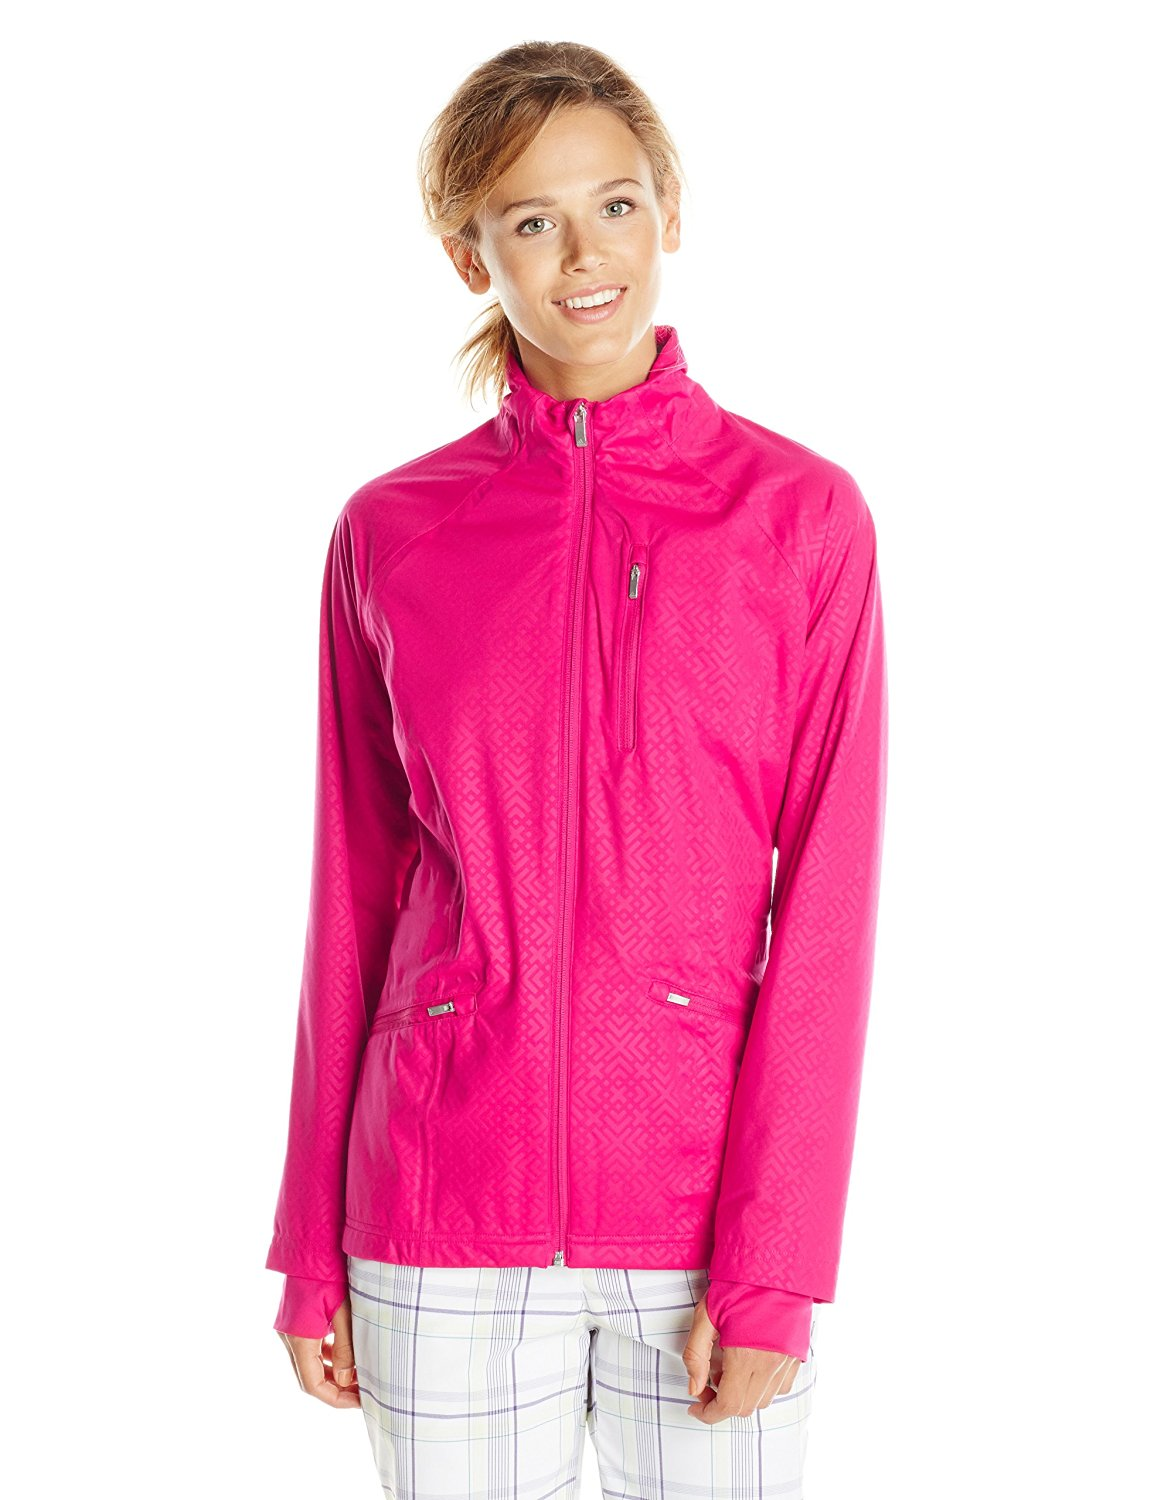 Adidas womens climaproof fashion golf rain jackets for Adidas golf rain shirt